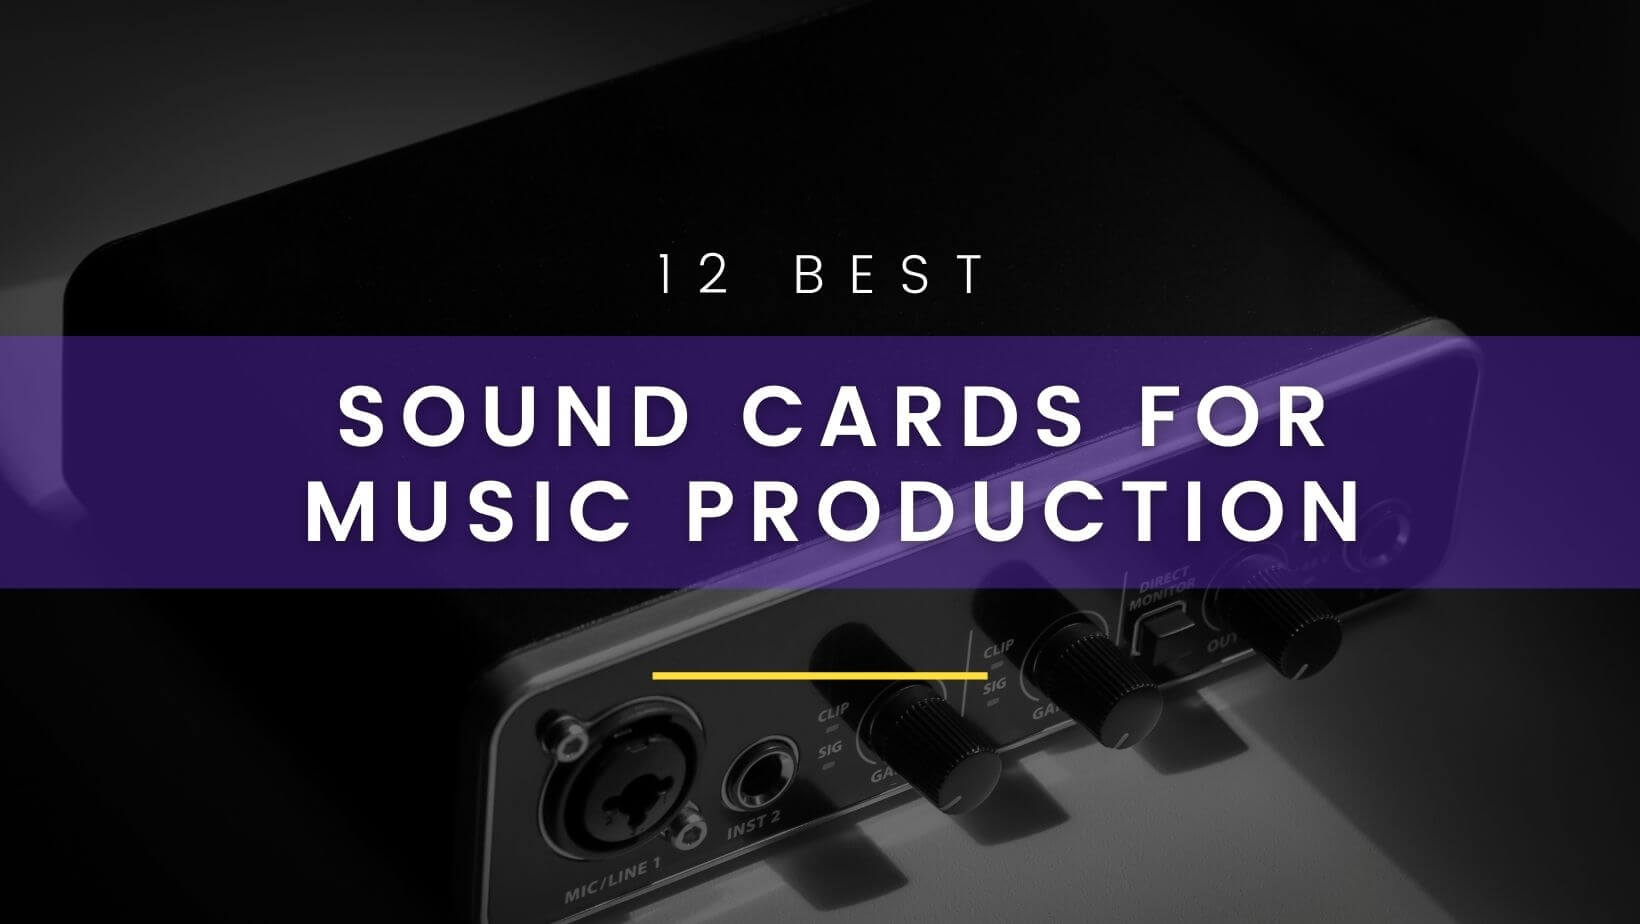 Best sound card for music production